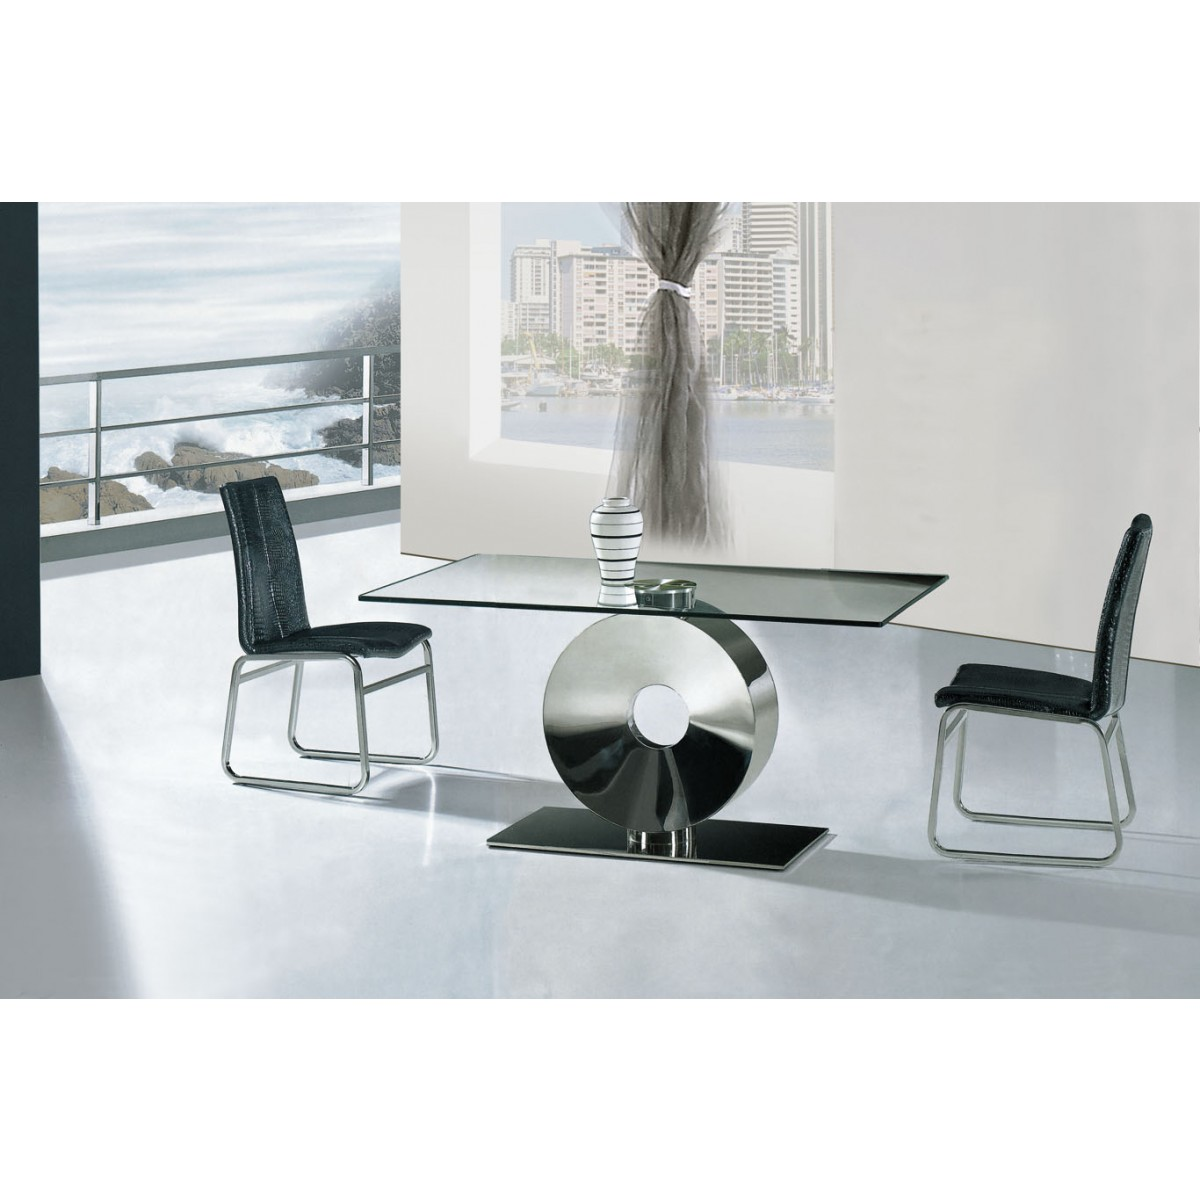 Table de salle manger design ring 160cm for Table salle manger noire design